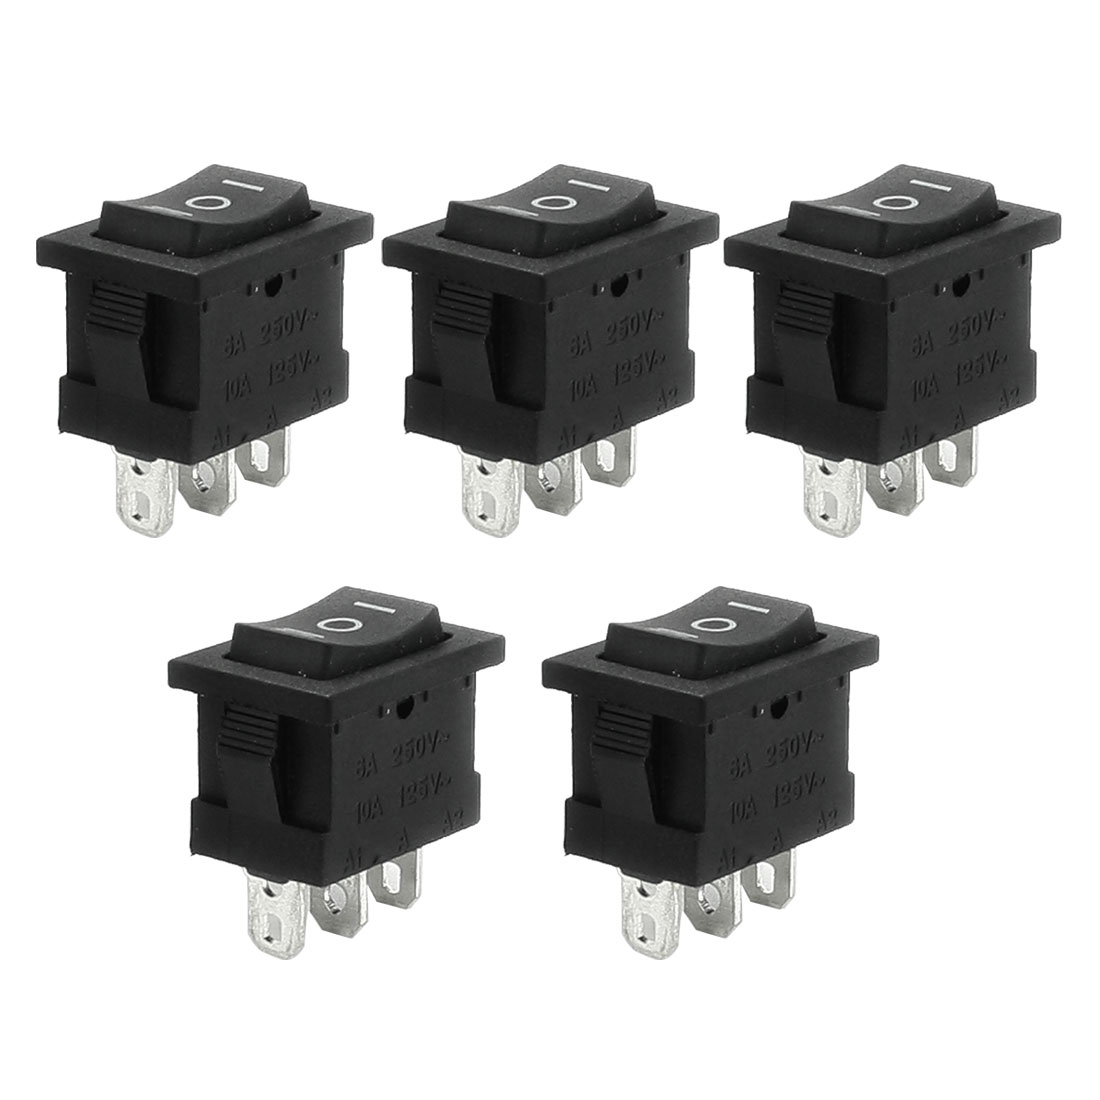 5 Pcs SPDT Black Button On/Off/On Rocker Switch AC 6A/250V 10A/125V